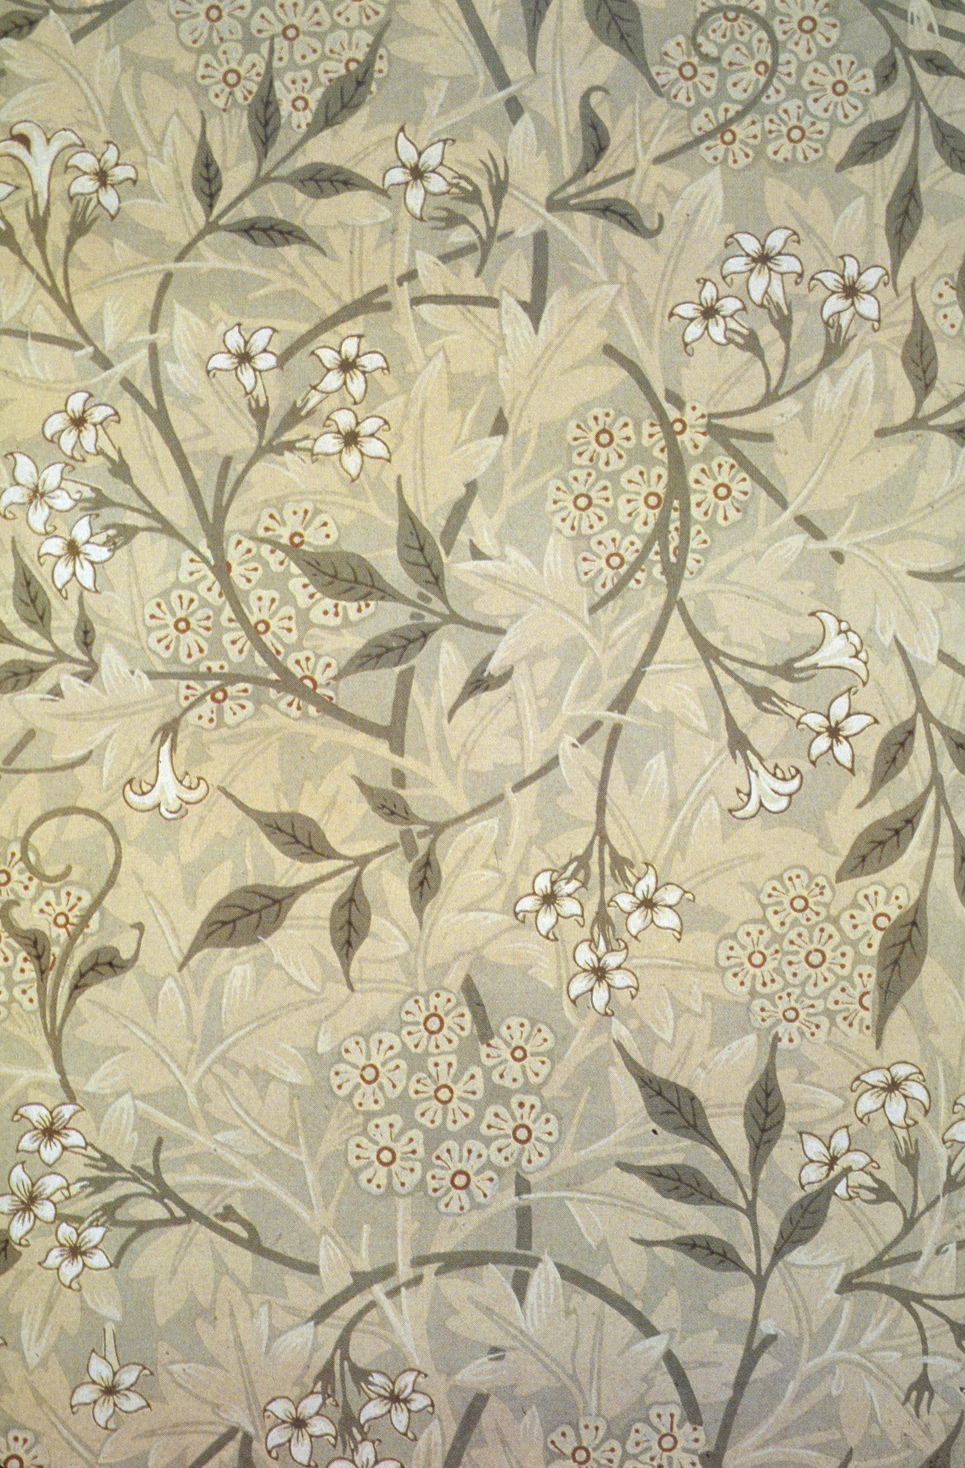 File:Morris Jasmine Wallpaper 1872.png.